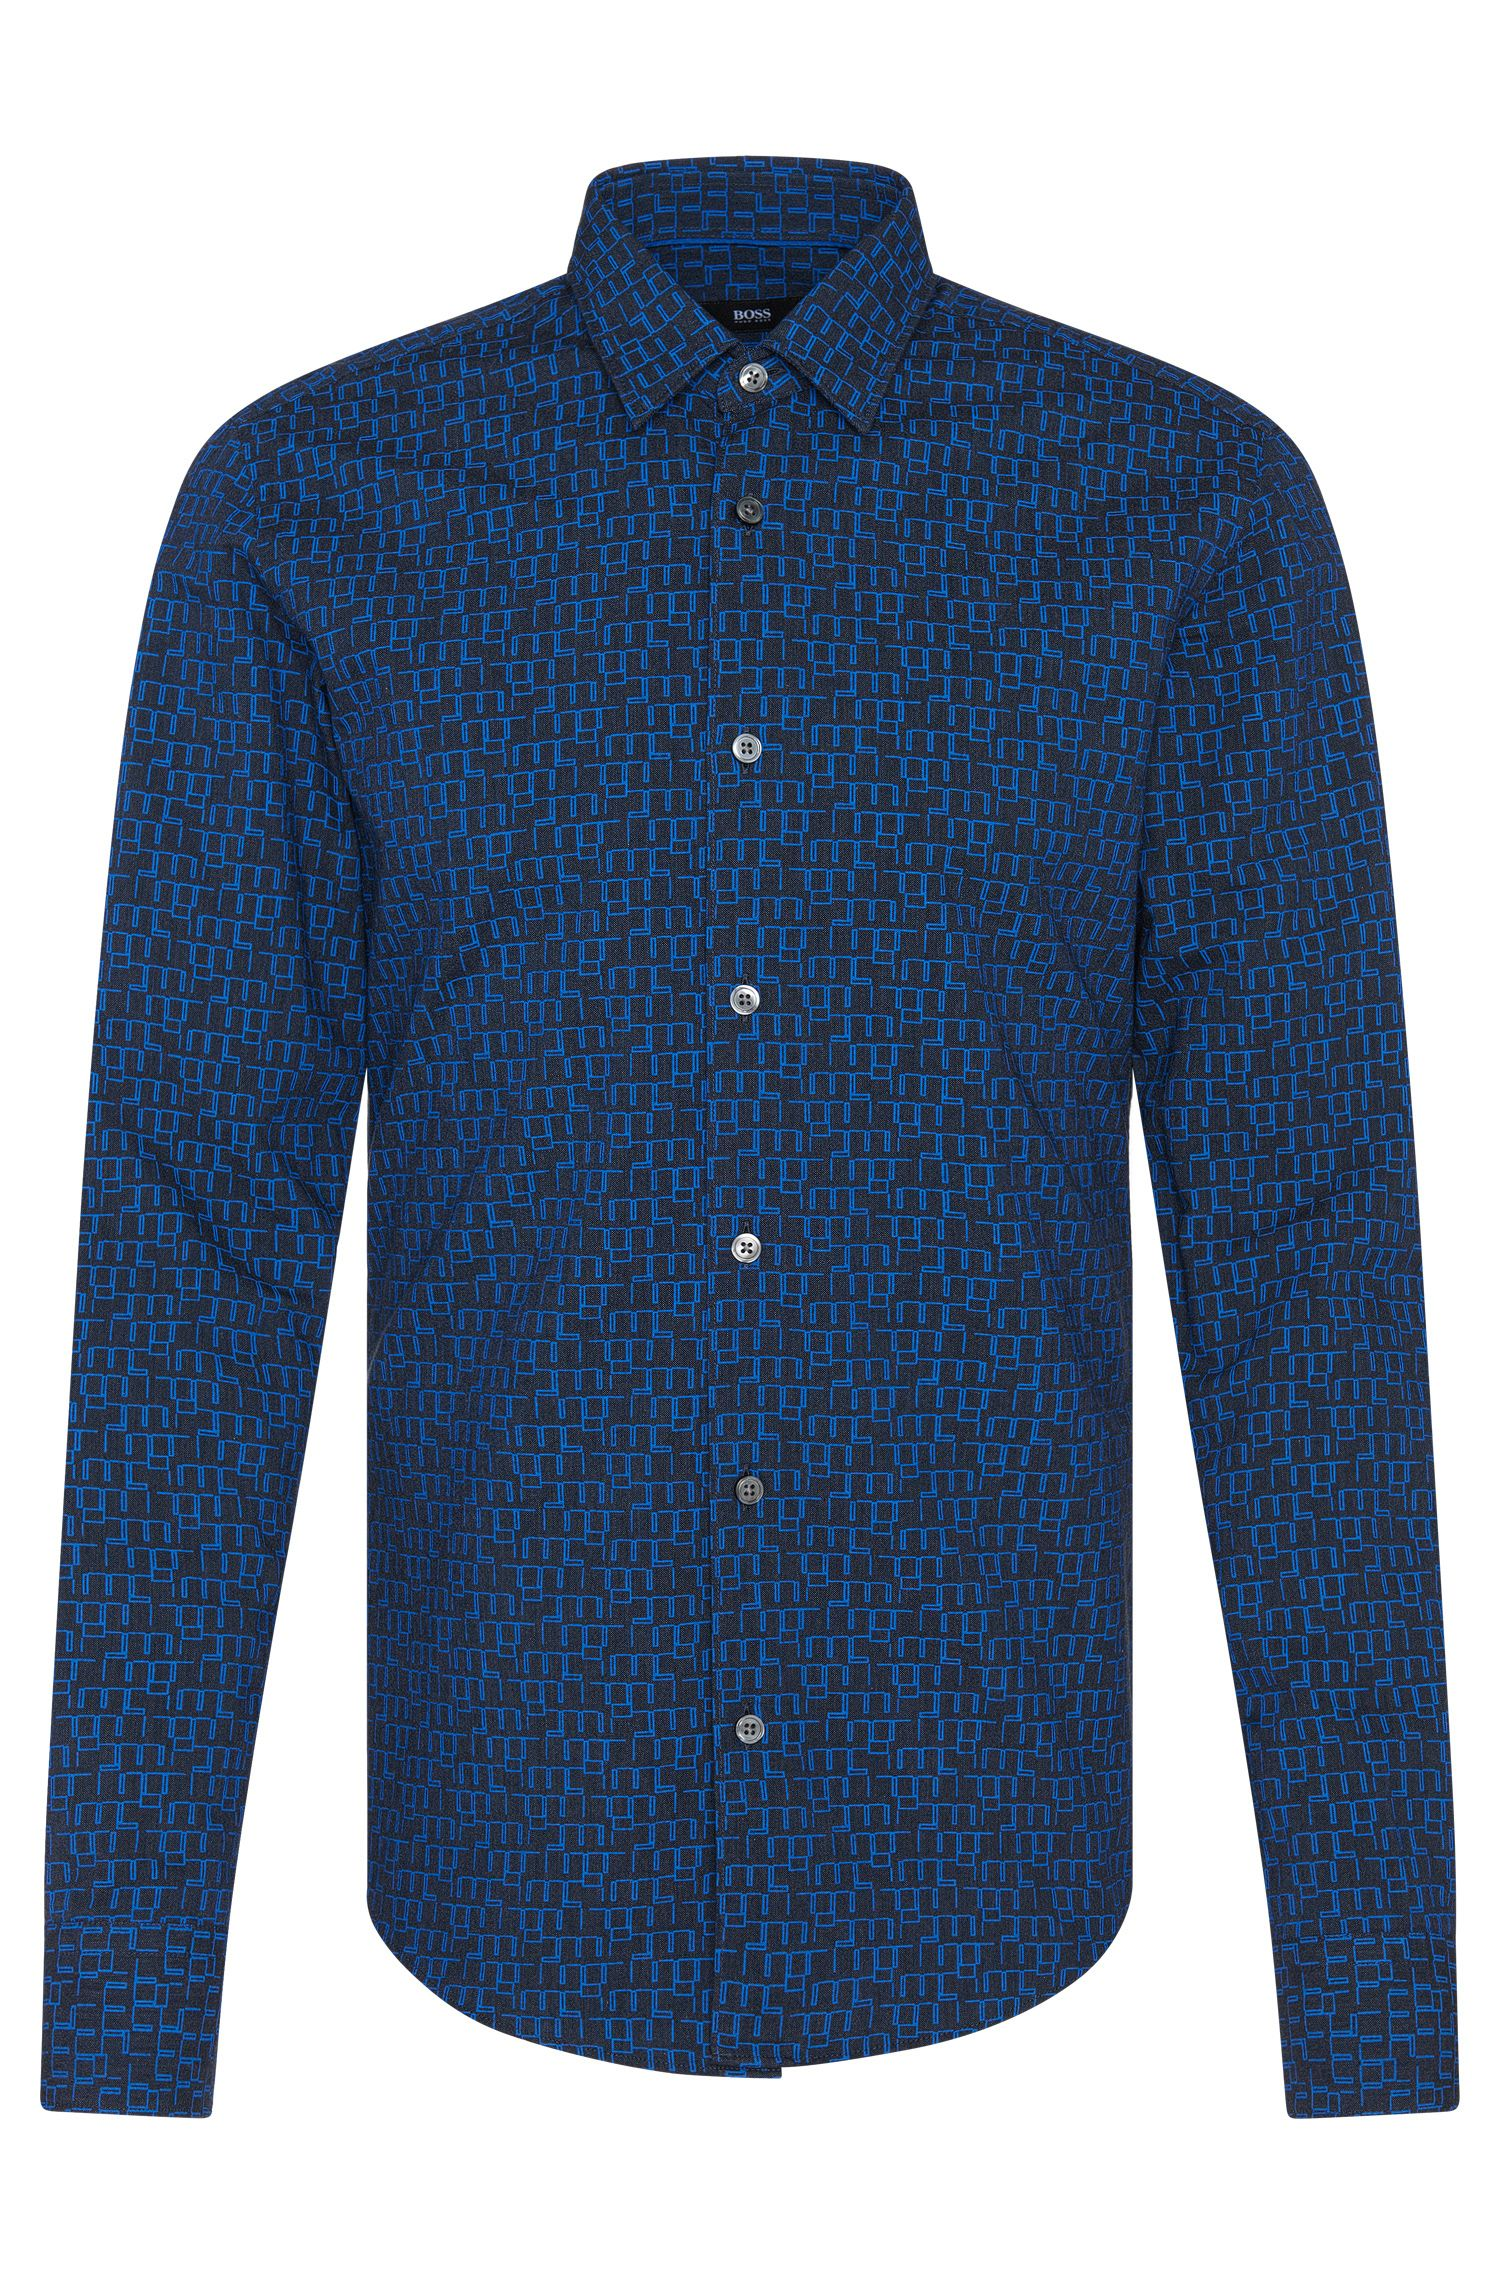 'Reid' | Slim Fit, Egyptian Cotton Patterned Button Down Shirt